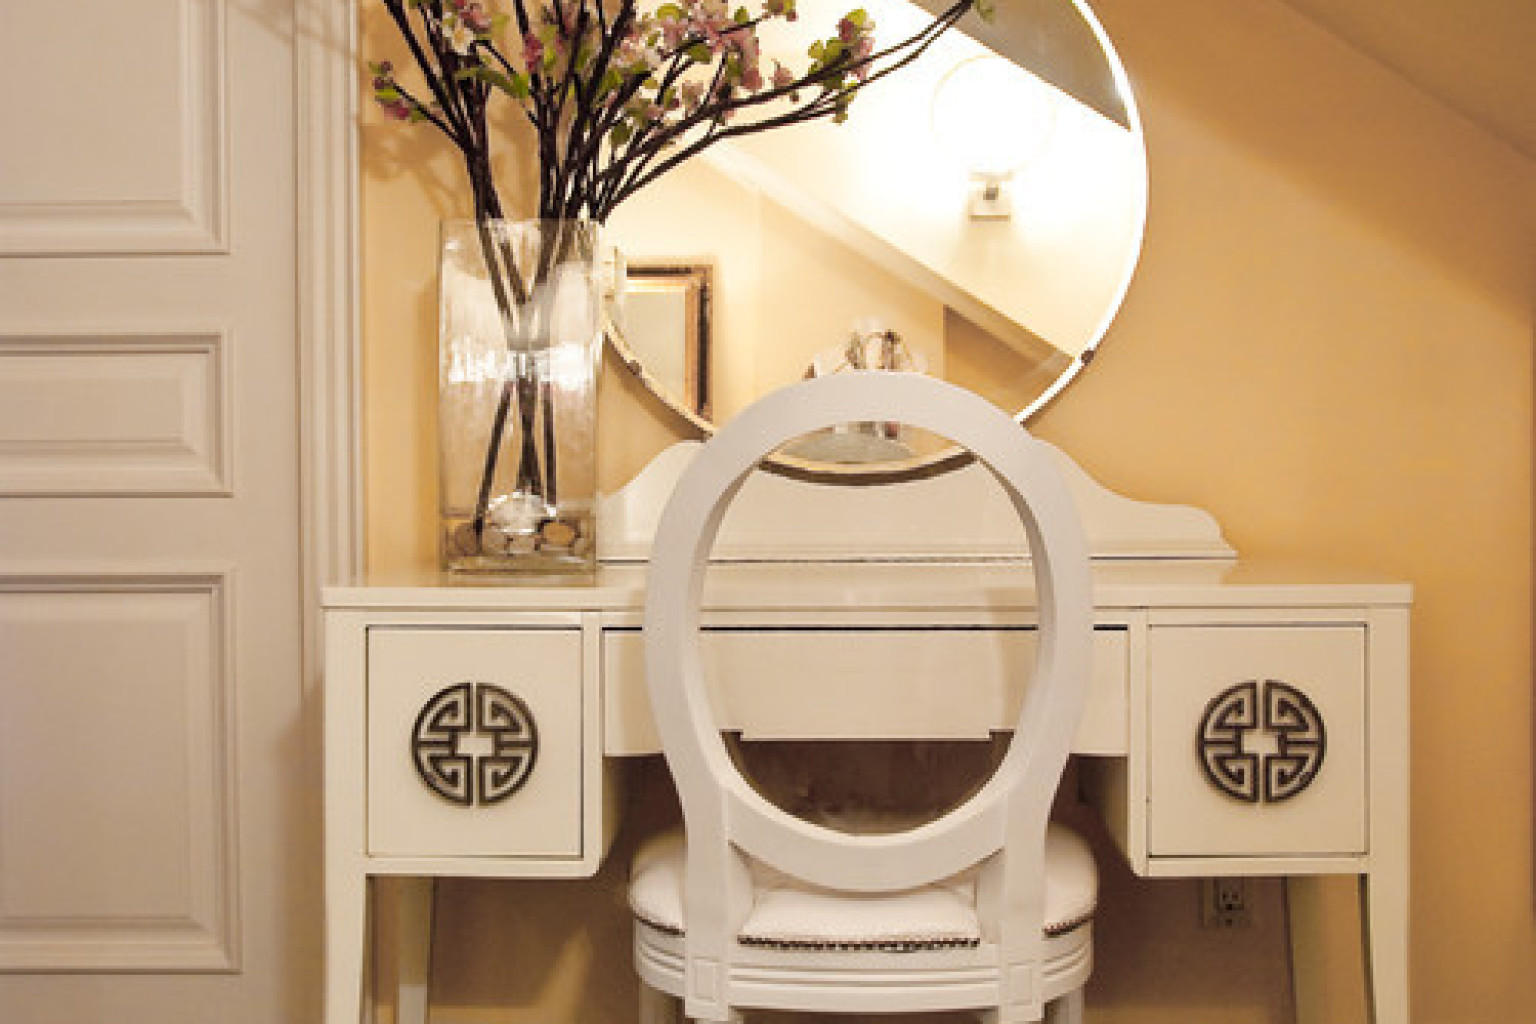 10 vanity tables that will change your morning routine forever 10 vanity tables that will change your morning routine forever photos huffpost geotapseo Choice Image